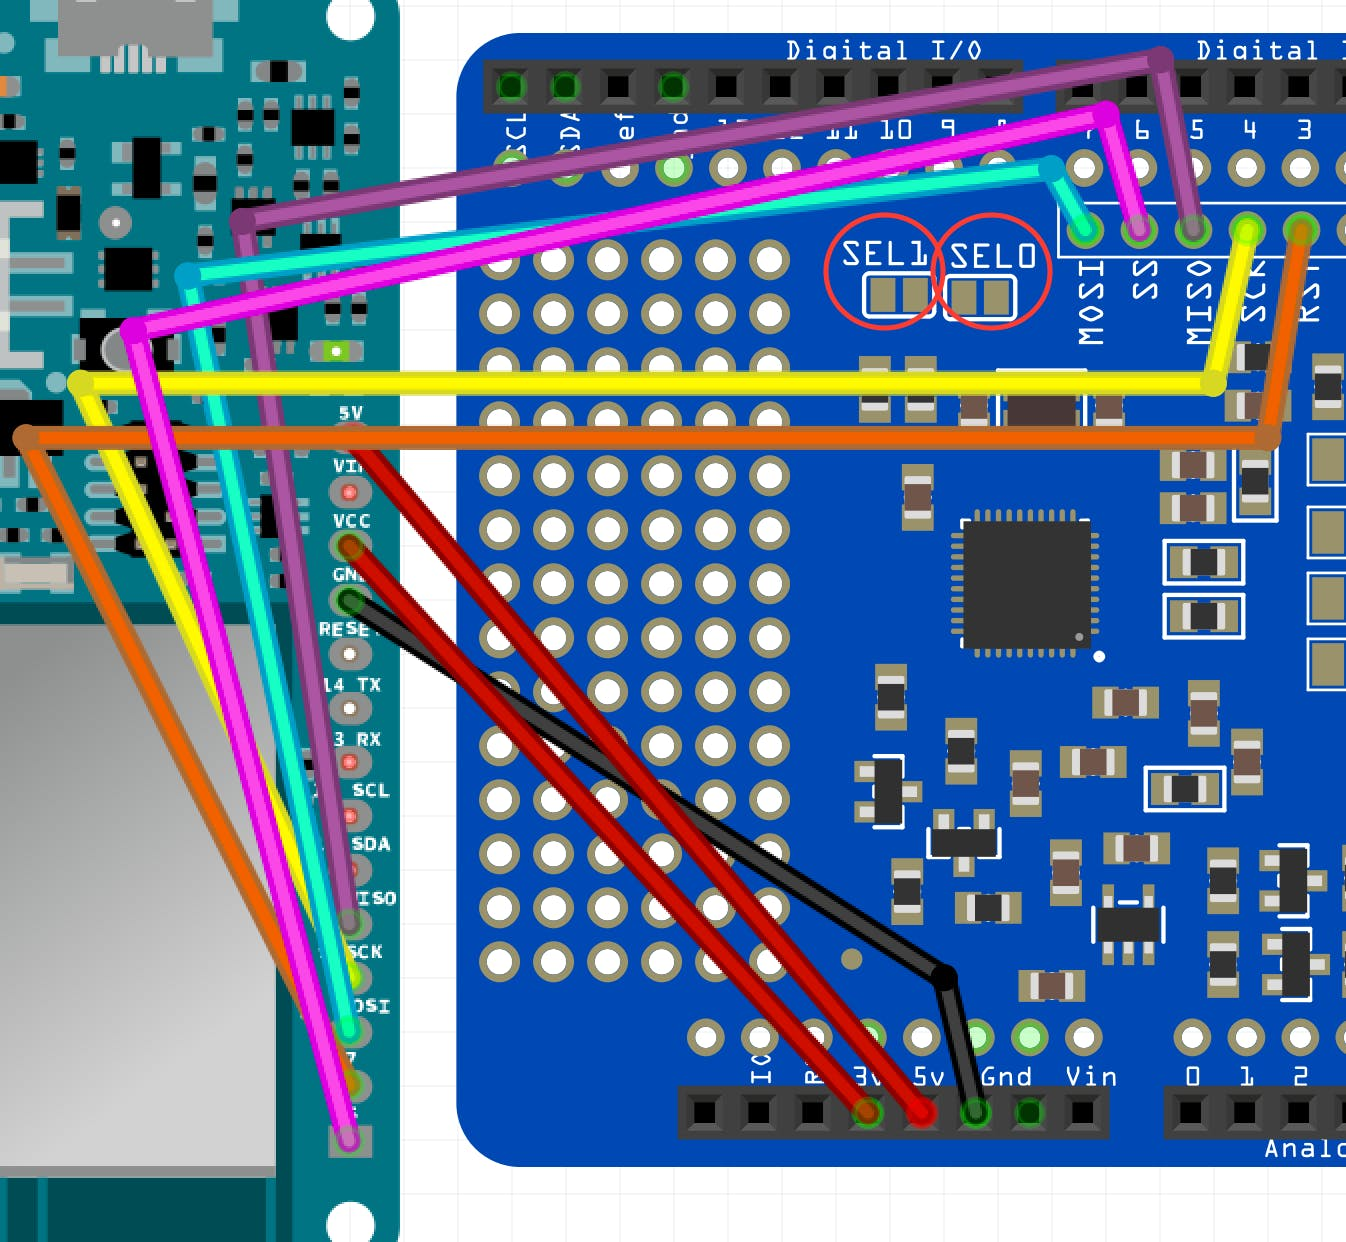 Fritzing Breadboard View of PN532 Shield and MKR1000